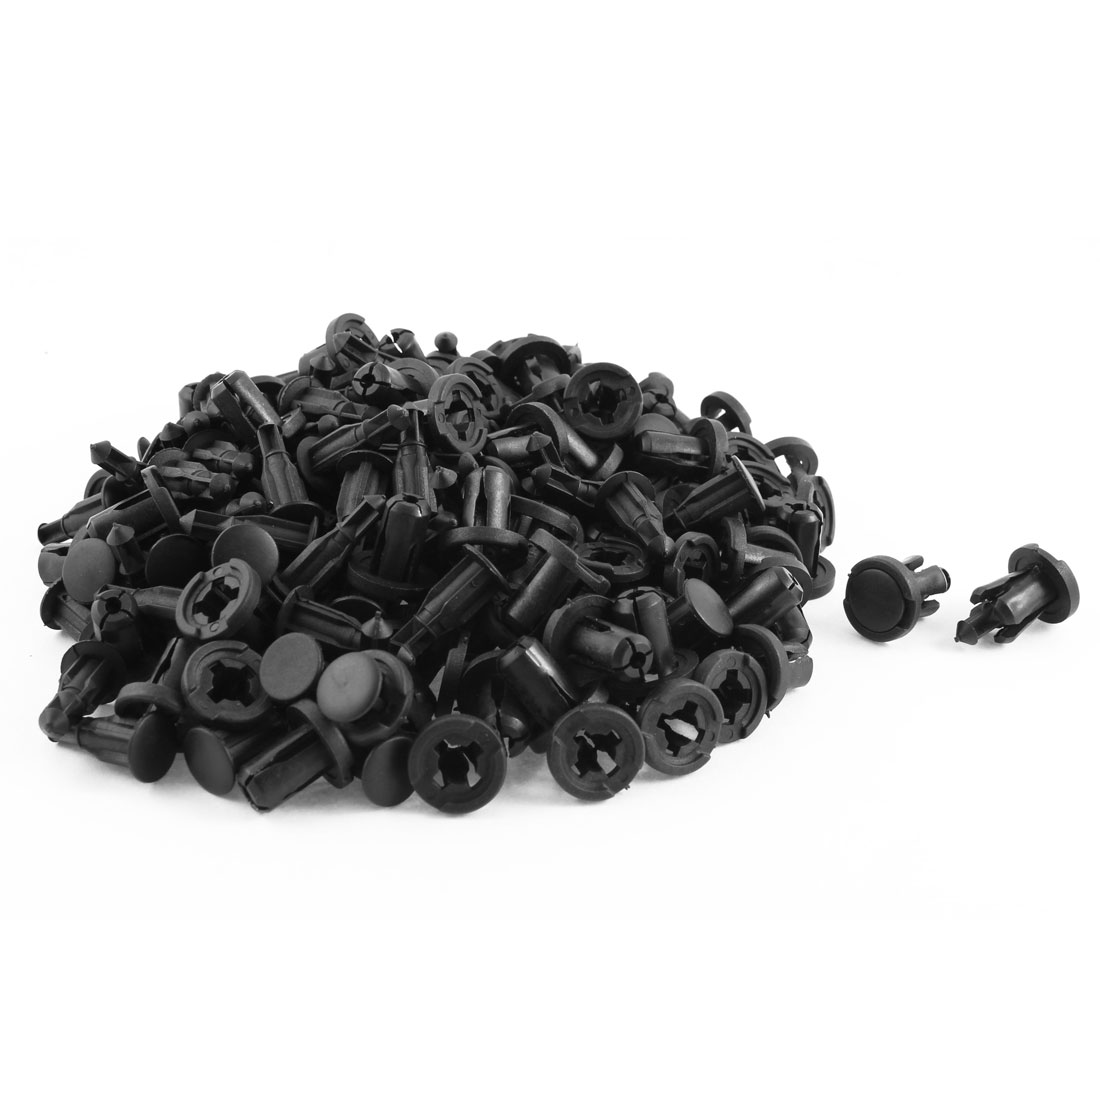 100 Pcs Black Plastic Rivet Trim Fastener Moulding Clips 10mm x 18mm x 19mm